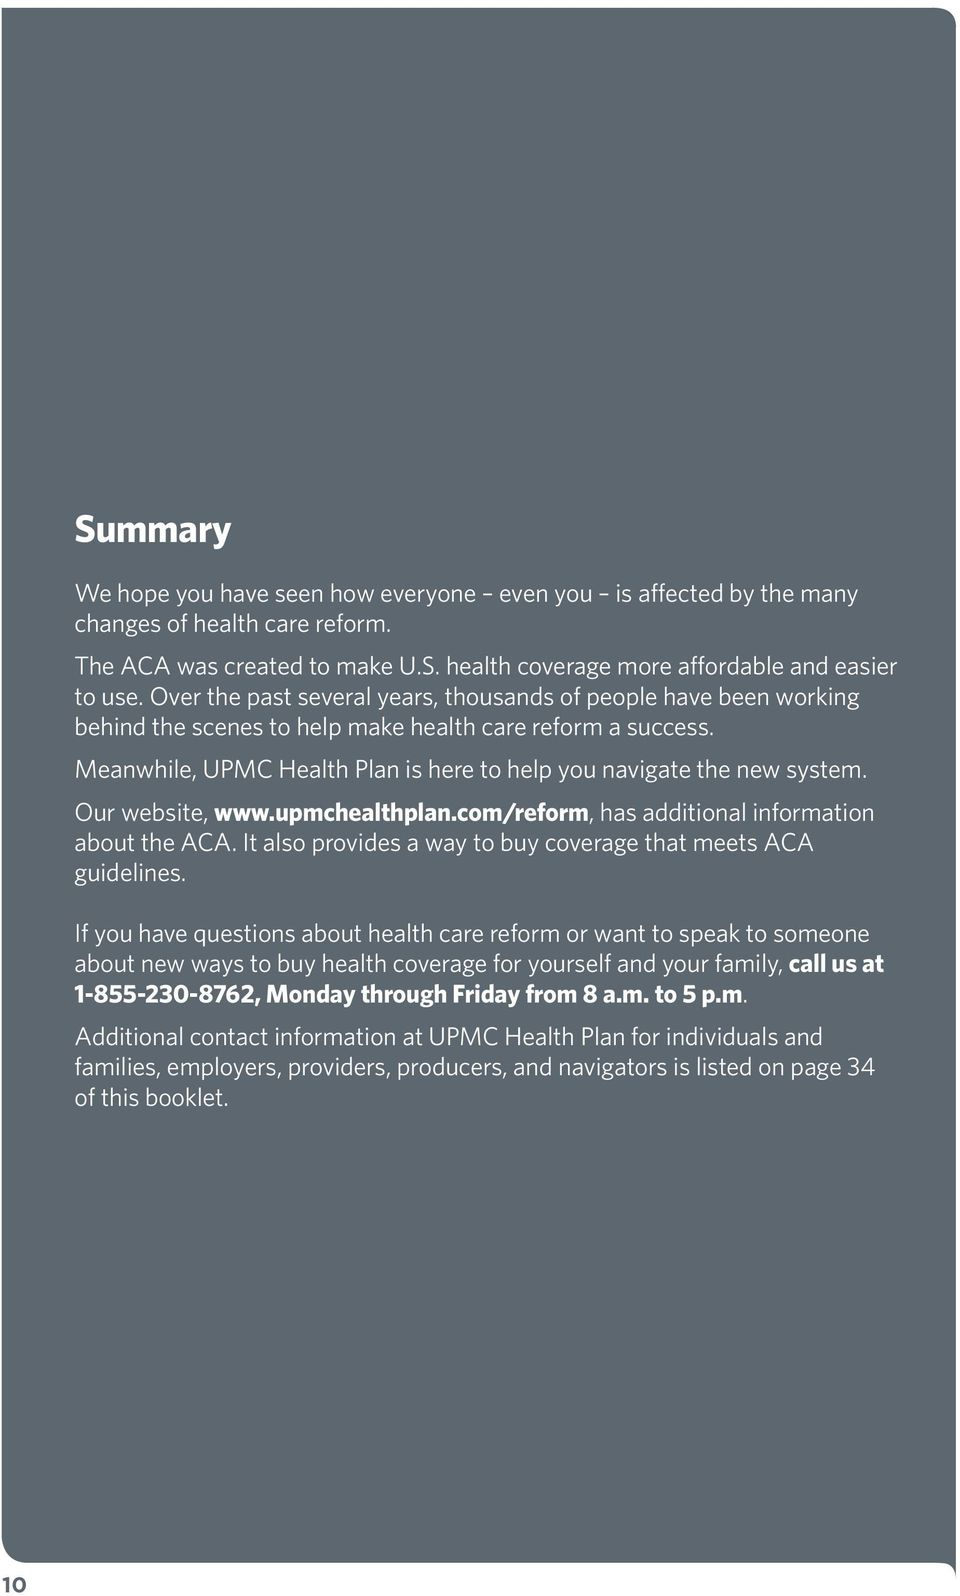 Our website, www.upmchealthplan.com/reform, has additional information about the ACA. It also provides a way to buy coverage that meets ACA guidelines.